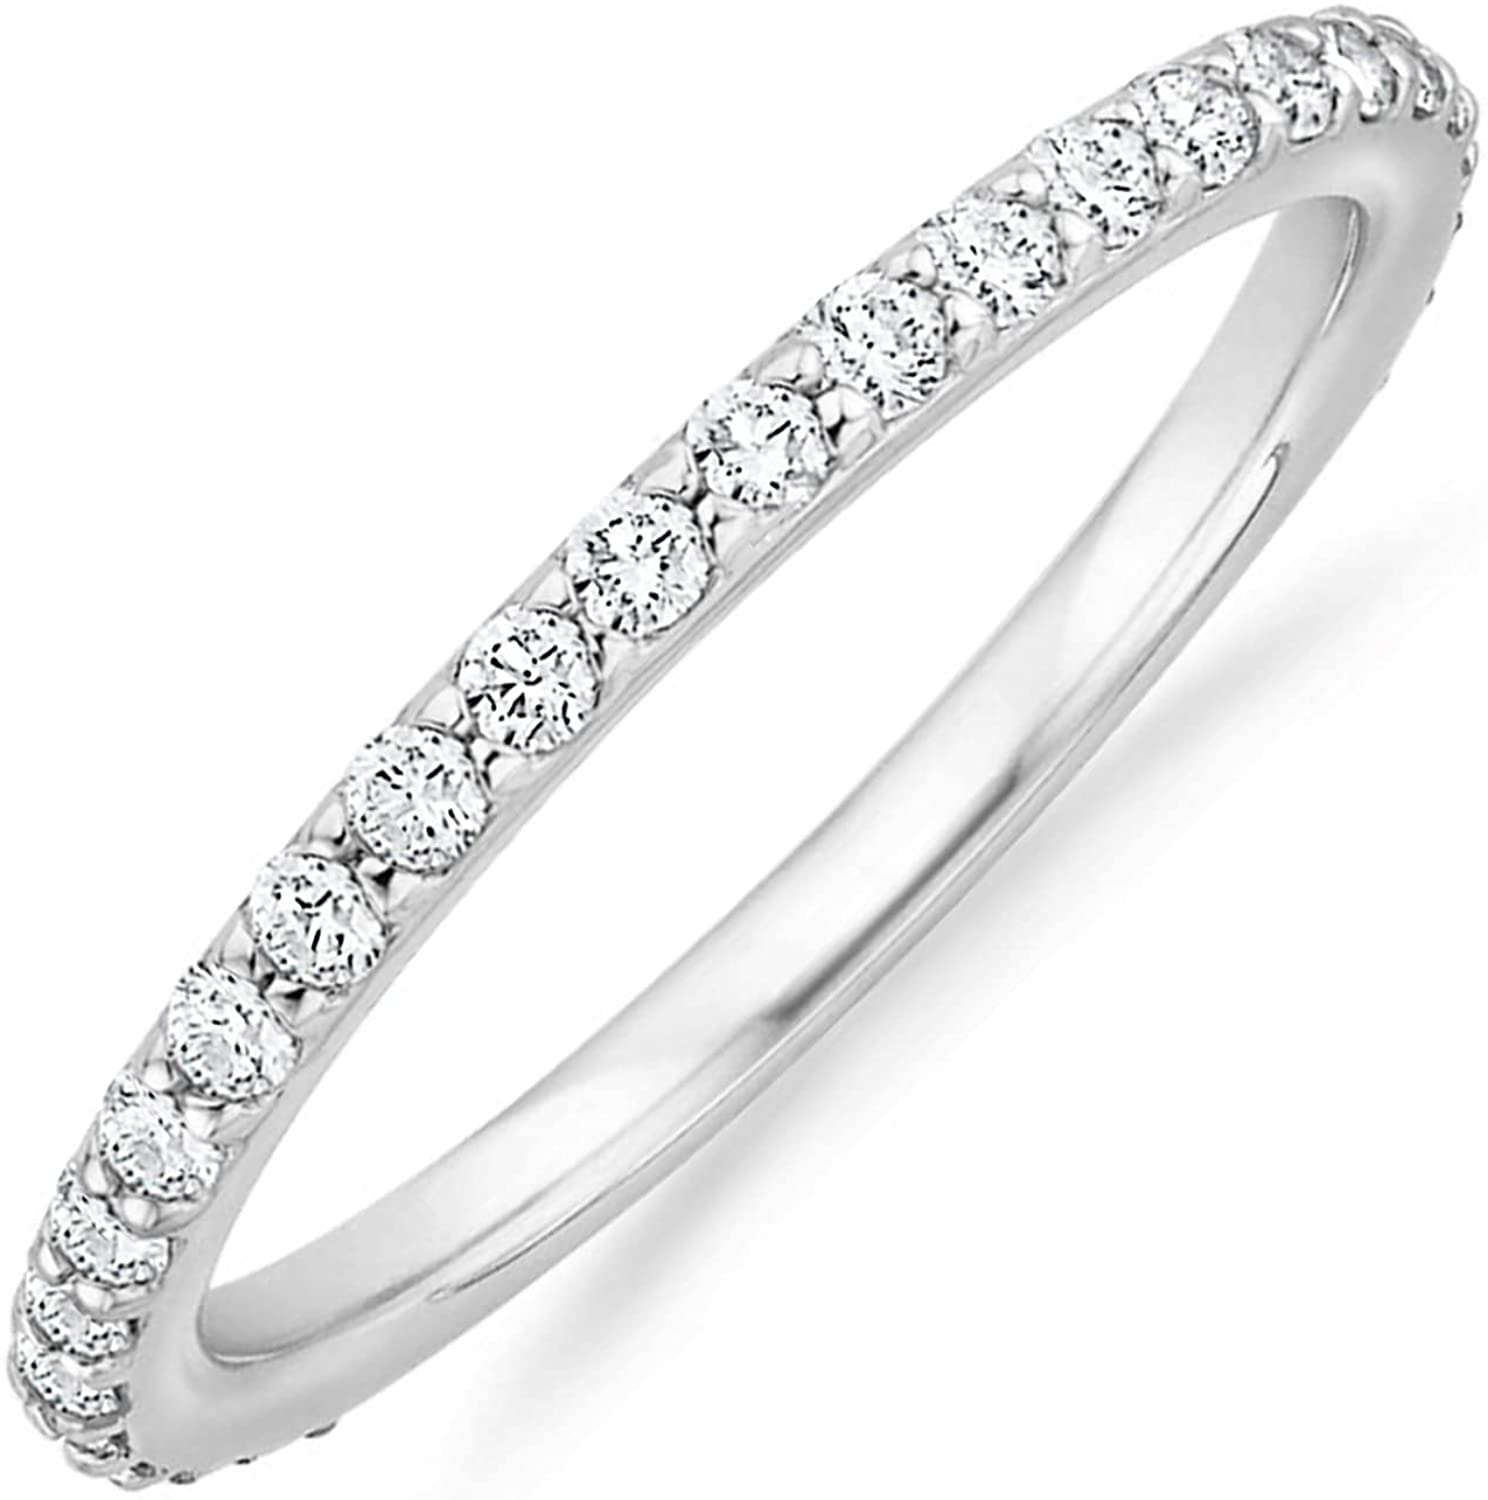 PAVOI 14K Gold Plated Cubic Zirconia Diamond Stackable Eternity Bands for Women: Clothing